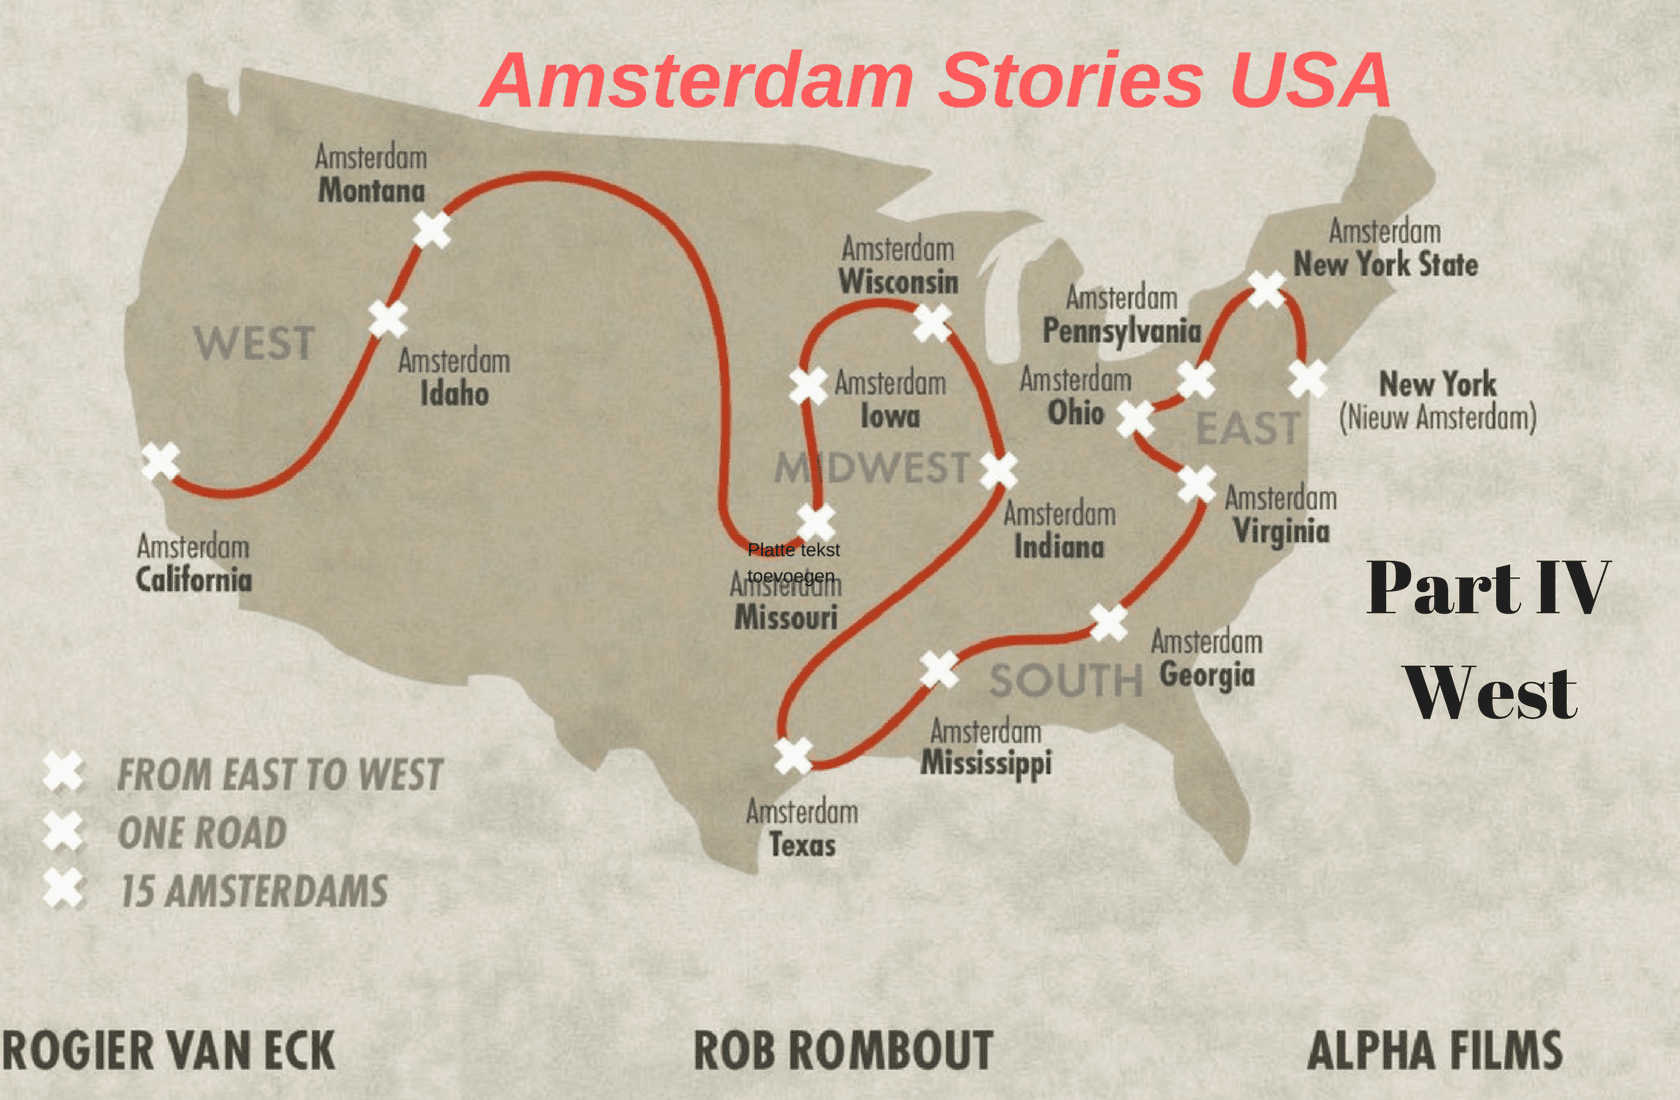 Amsterdam Stories USA IV